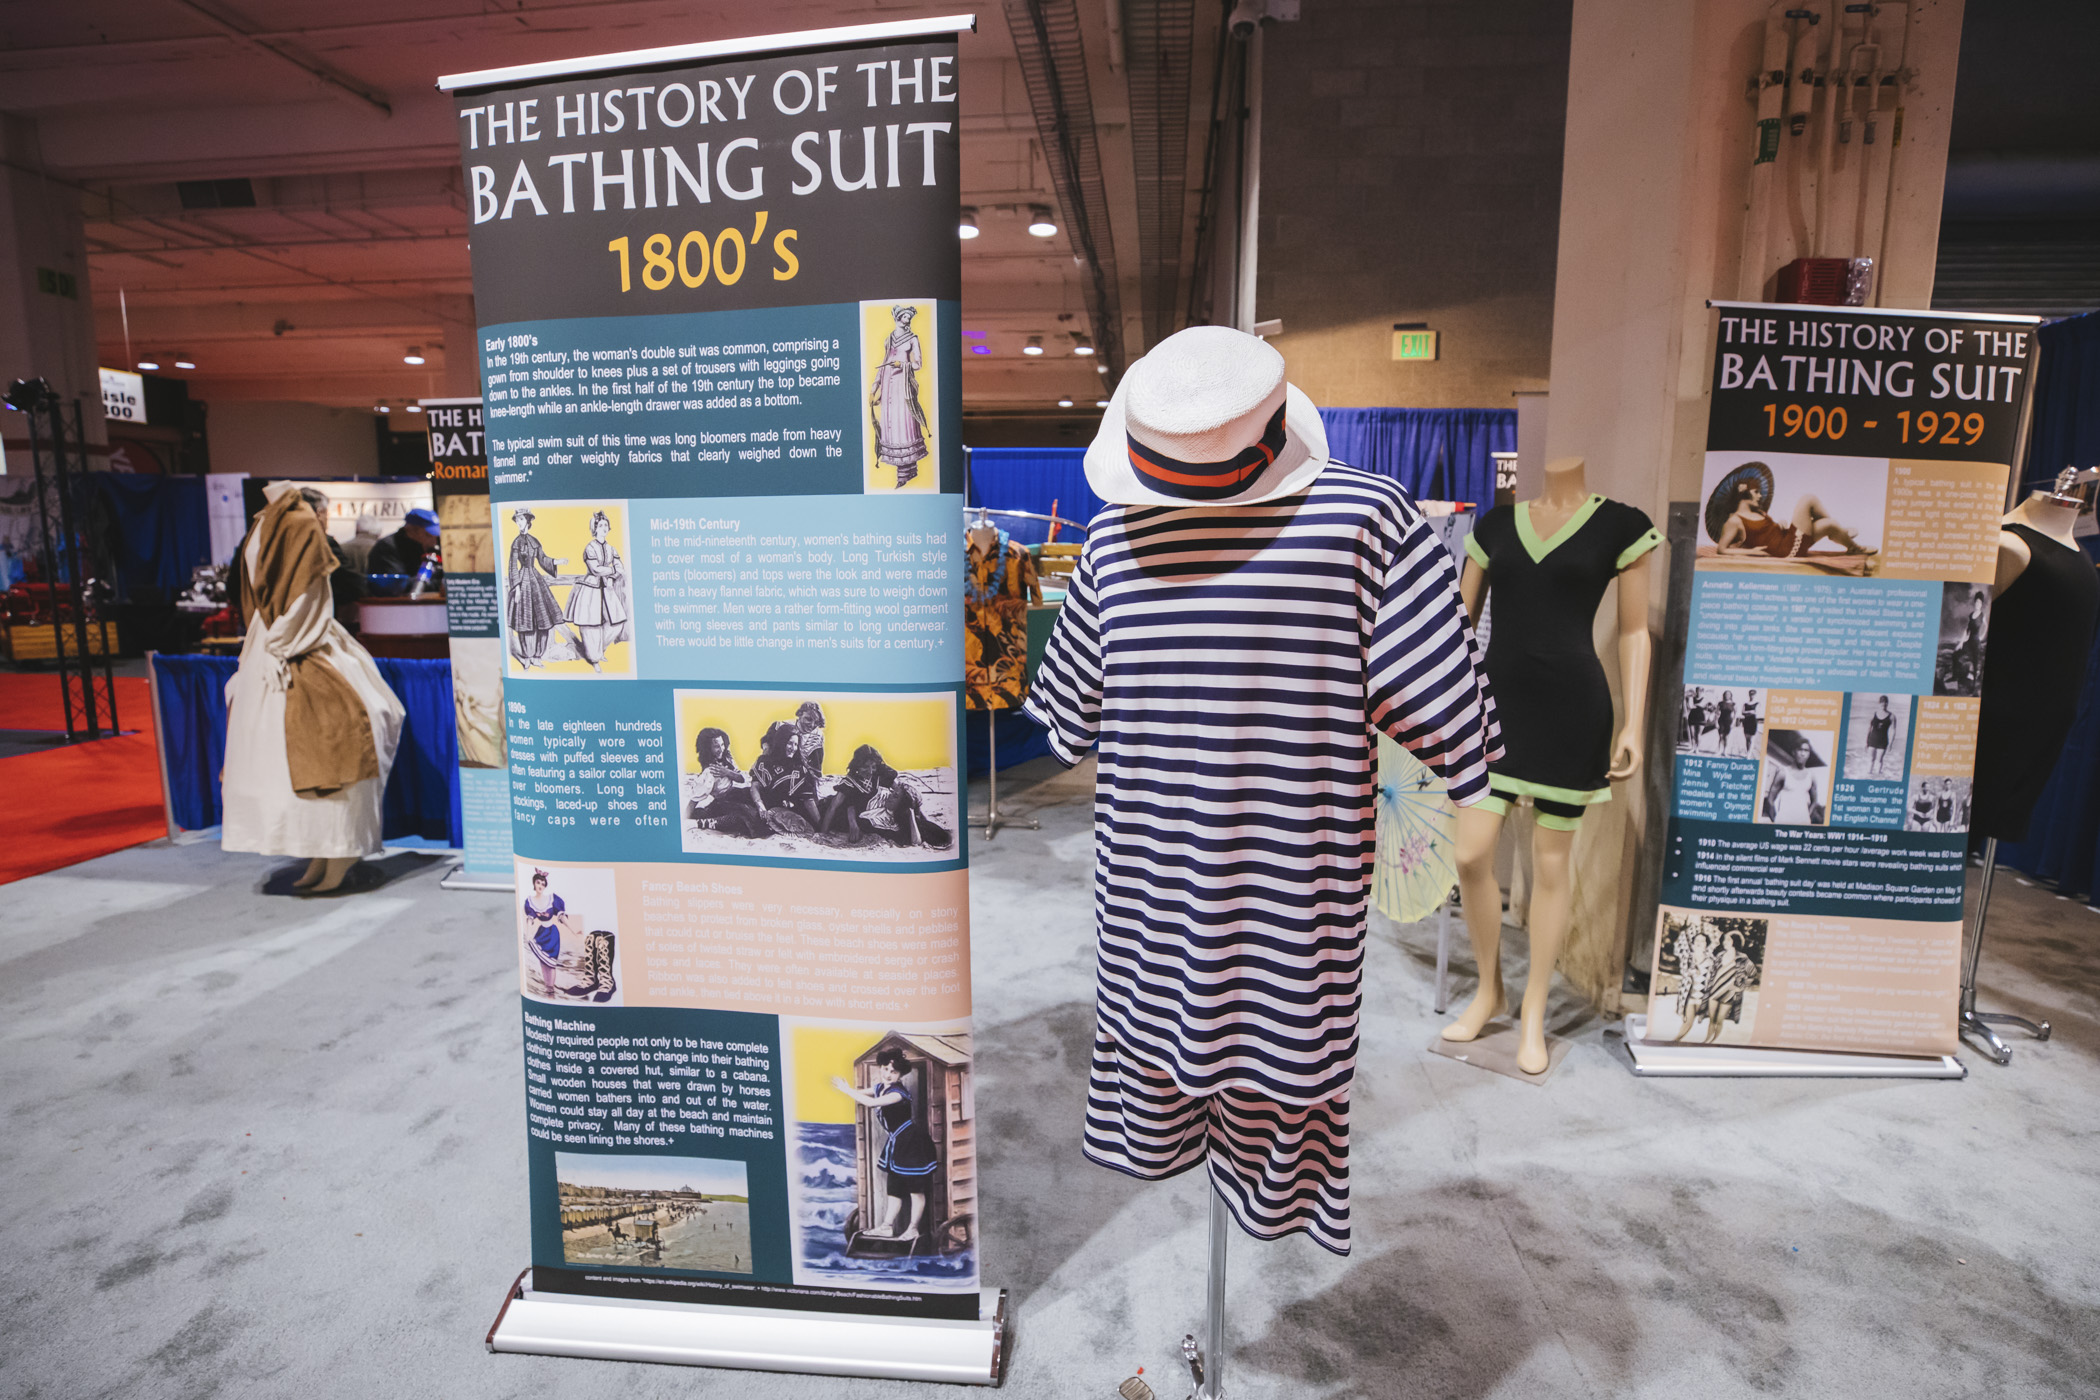 The History of the Bathing Suit:  1800s. In the 19th century, the woman's double suit was common, comprising a gown from shoulder to knees plus a set of trousers with leggings going down to the ankles. In the mid nineteenth century women's bathing suits had to cover most of a woman's body, with long Turkish style pants and tops made of heavy flannel. In the late 1800s women wore wool dresses with puffed sleeves and often, a sailor collar. Bathing slippers were very necessary, especially on stony beaches. (Image: Sunita Martini / Seattle Refined)<p></p>